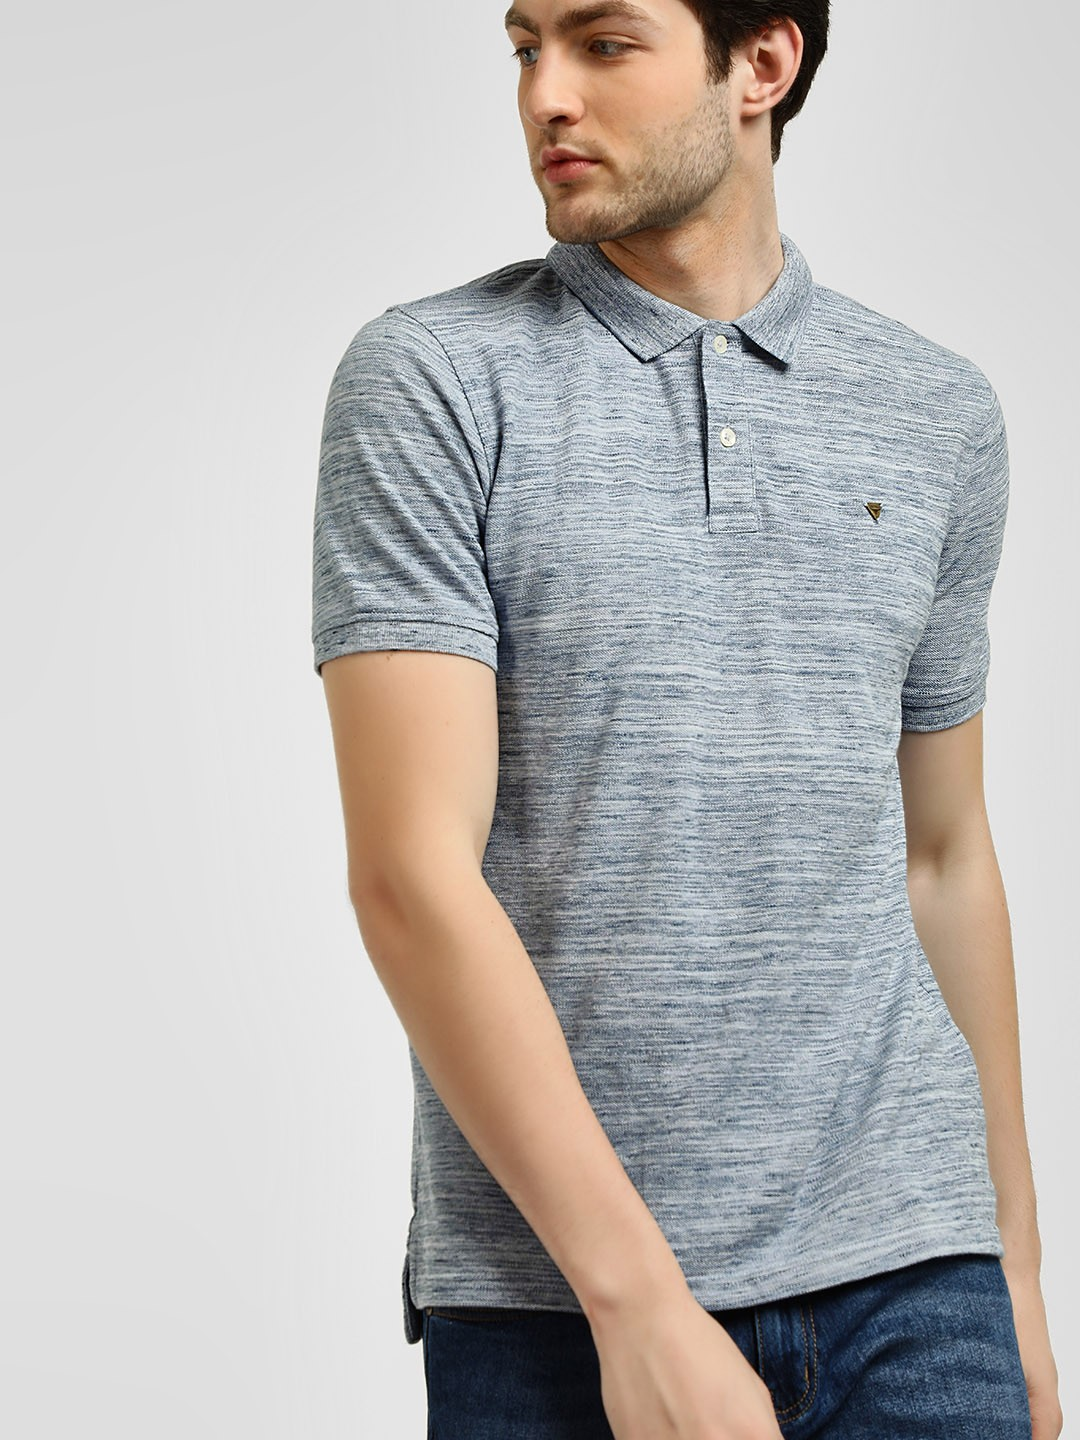 Buffalo Grey Injected Slub Polo Shirt 1